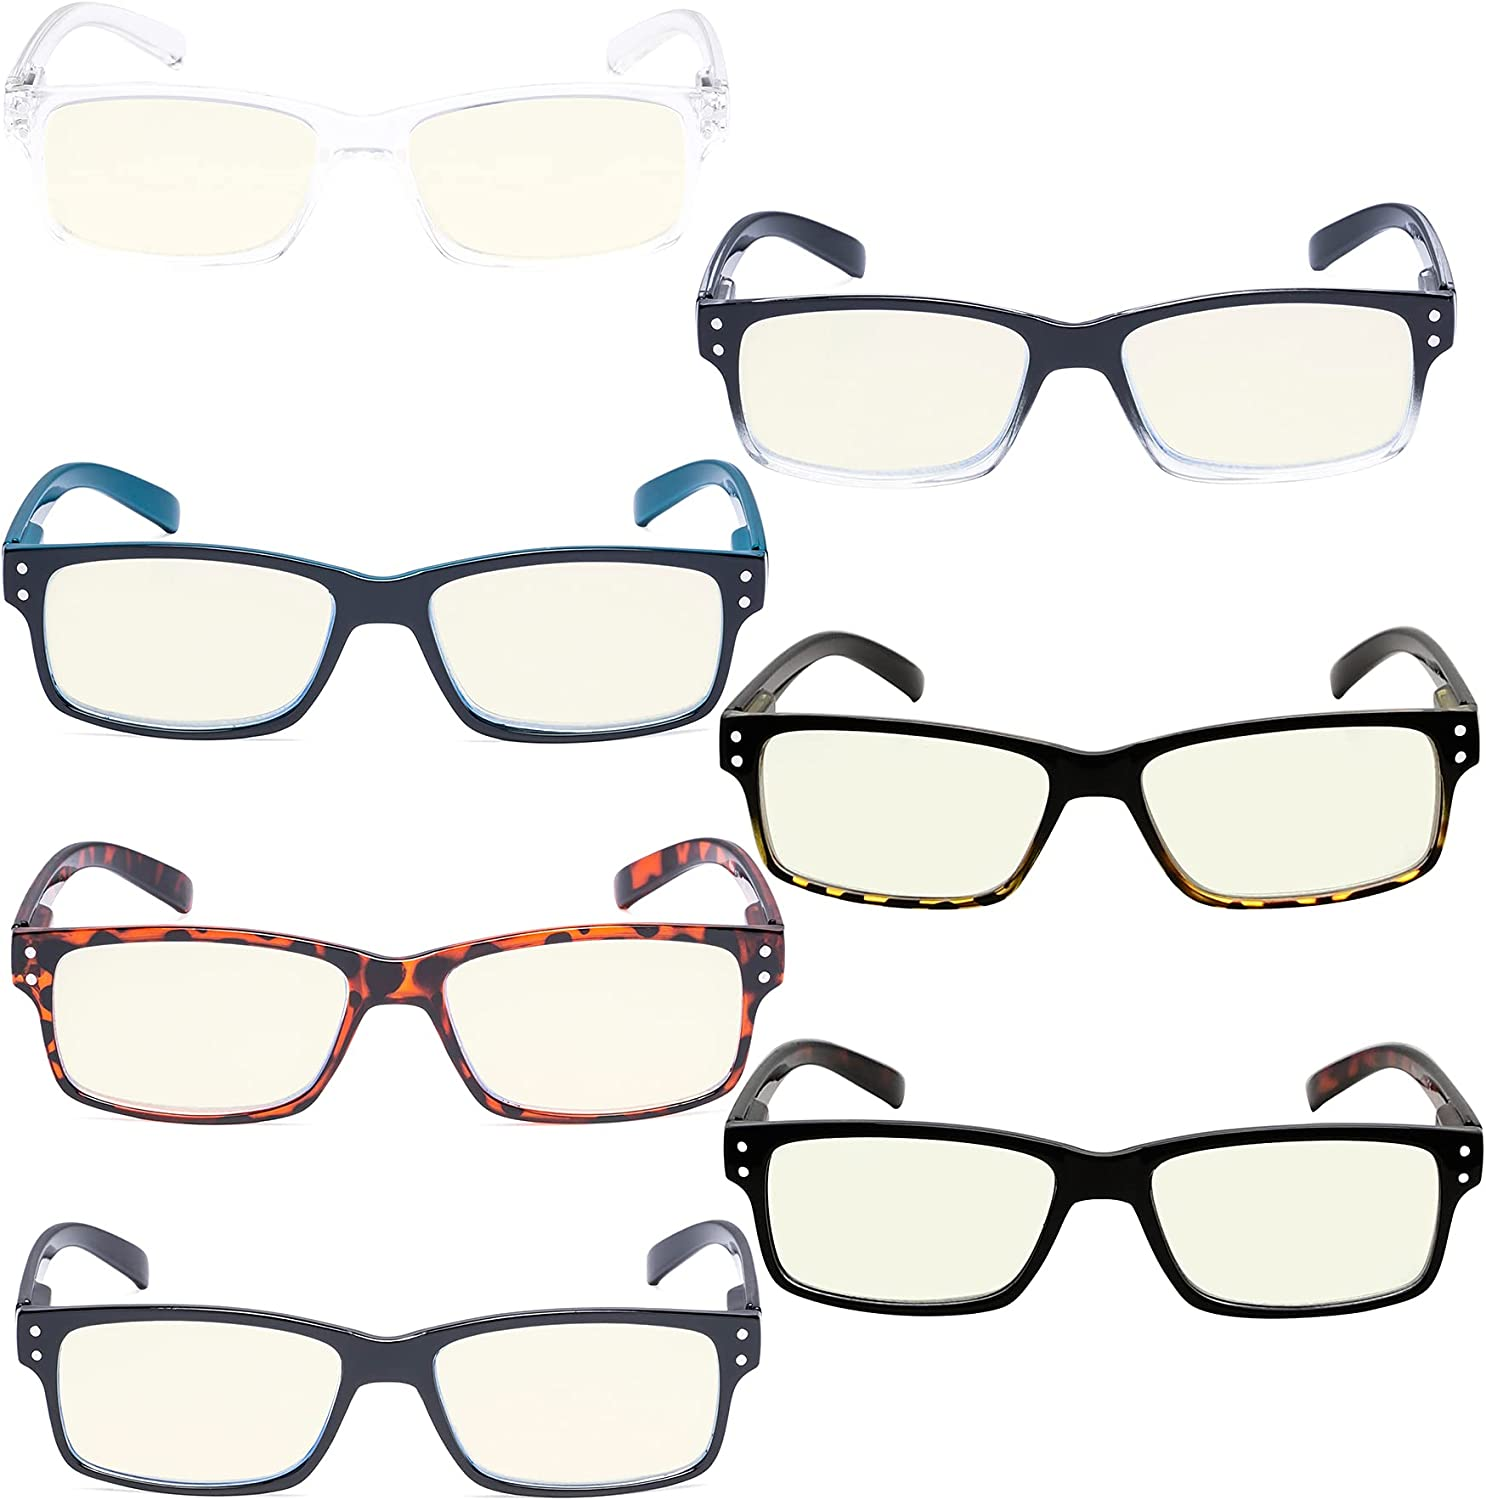 Reducblu Blue Light Challenge the lowest price of Japan ☆ Blocking shop Glasses for Compute Men Women and -